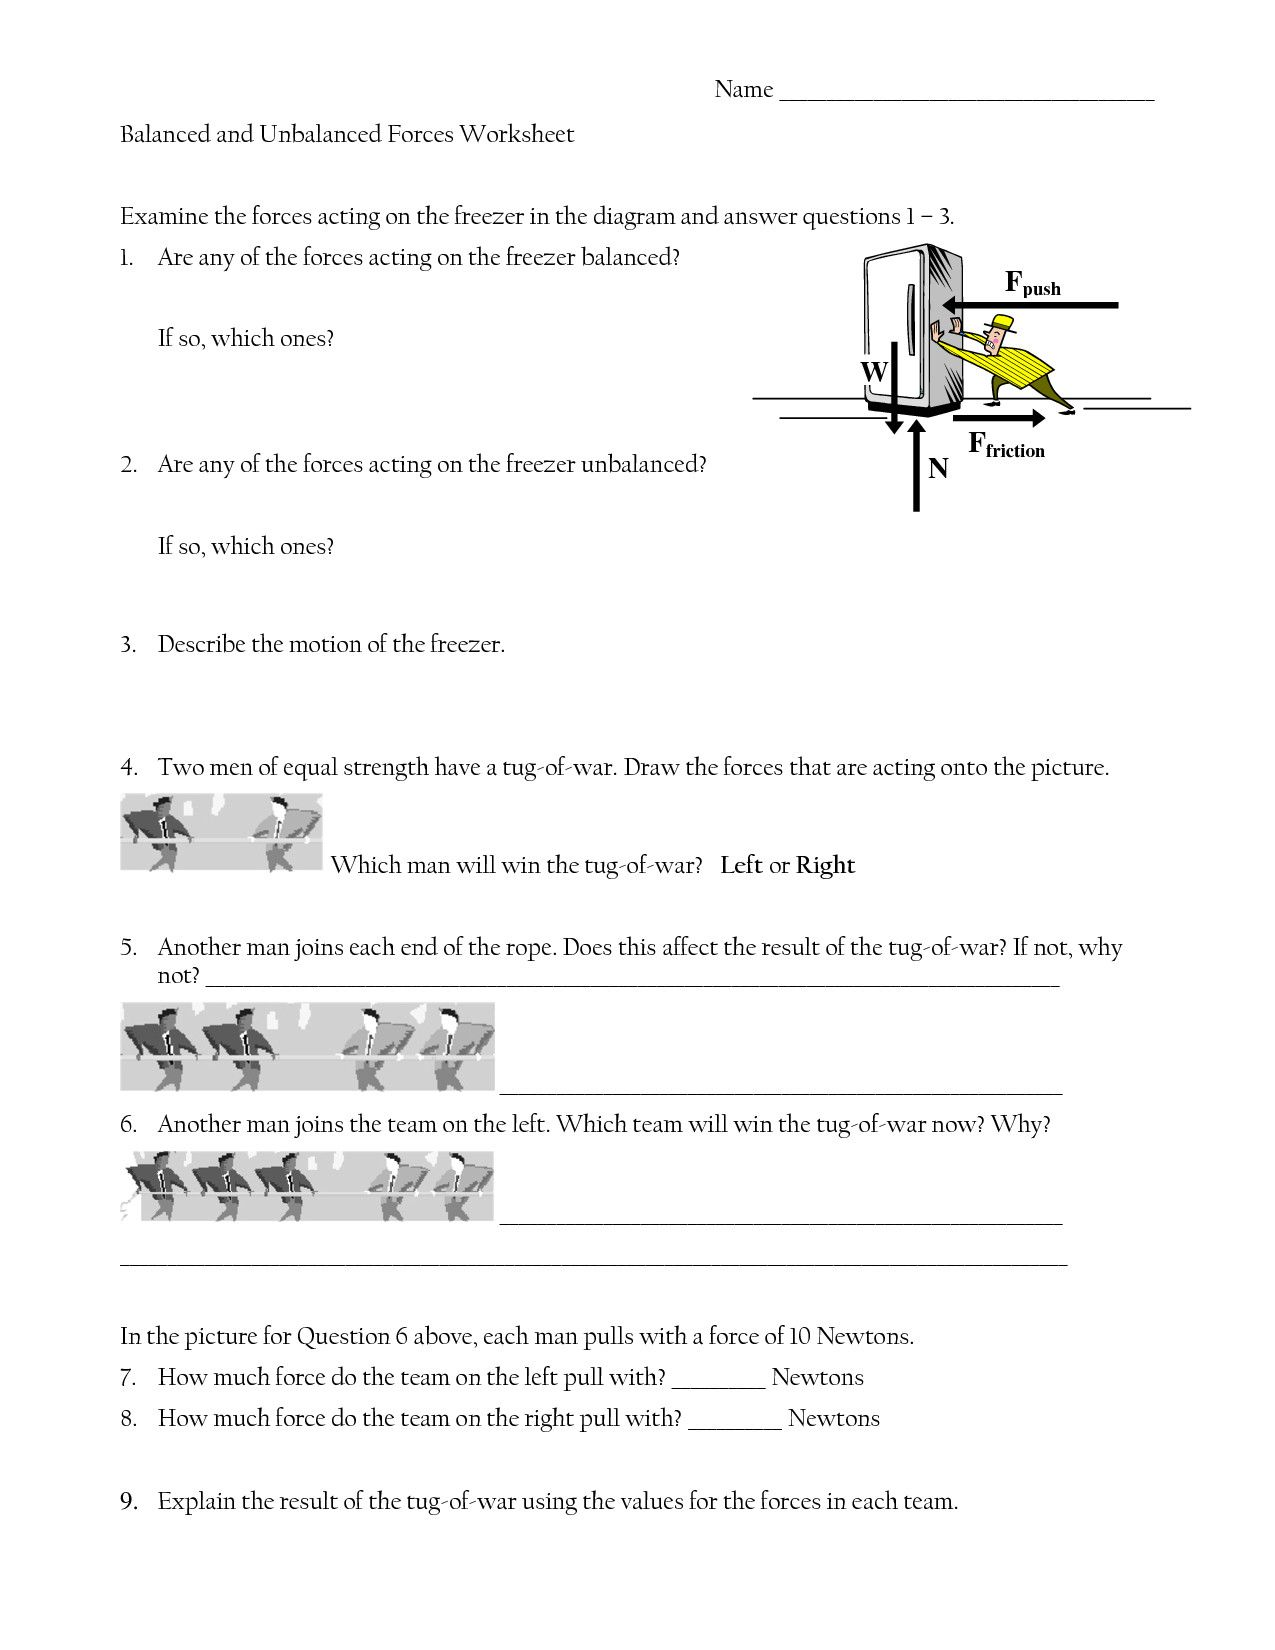 Friction Worksheet Answers